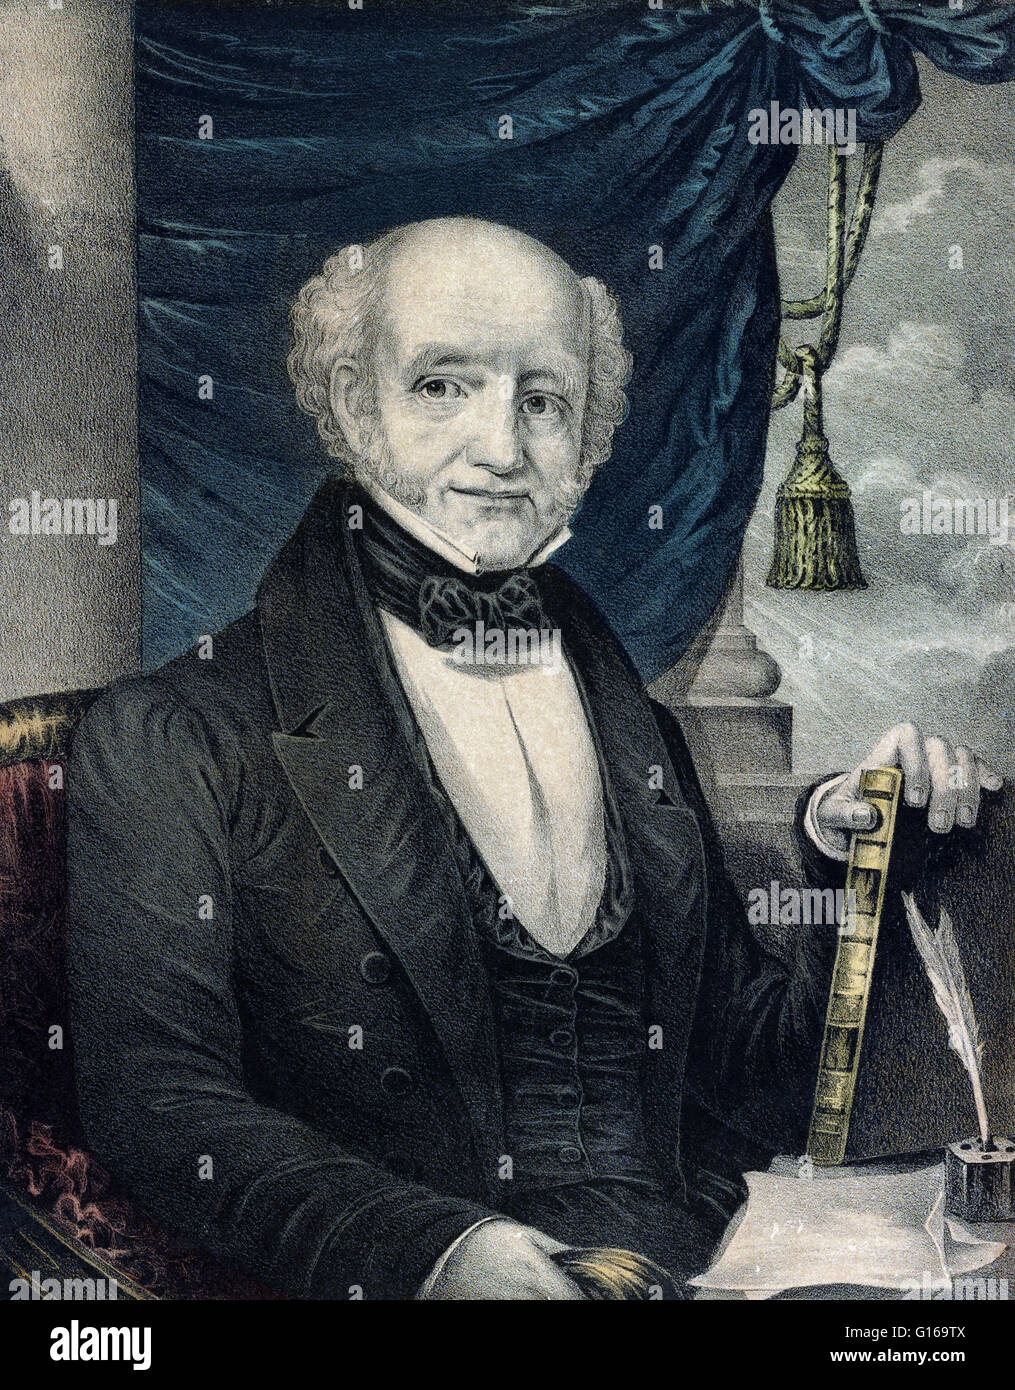 Martin Van Buren (December 5, 1782 - July 24, 1862) was the eighth President of the United States (1837-1841). Before his presidency, he was the eighth Vice President (1833-1837) and the tenth Secretary of State (1829-1831), both under Andrew Jackson. He Stock Photo